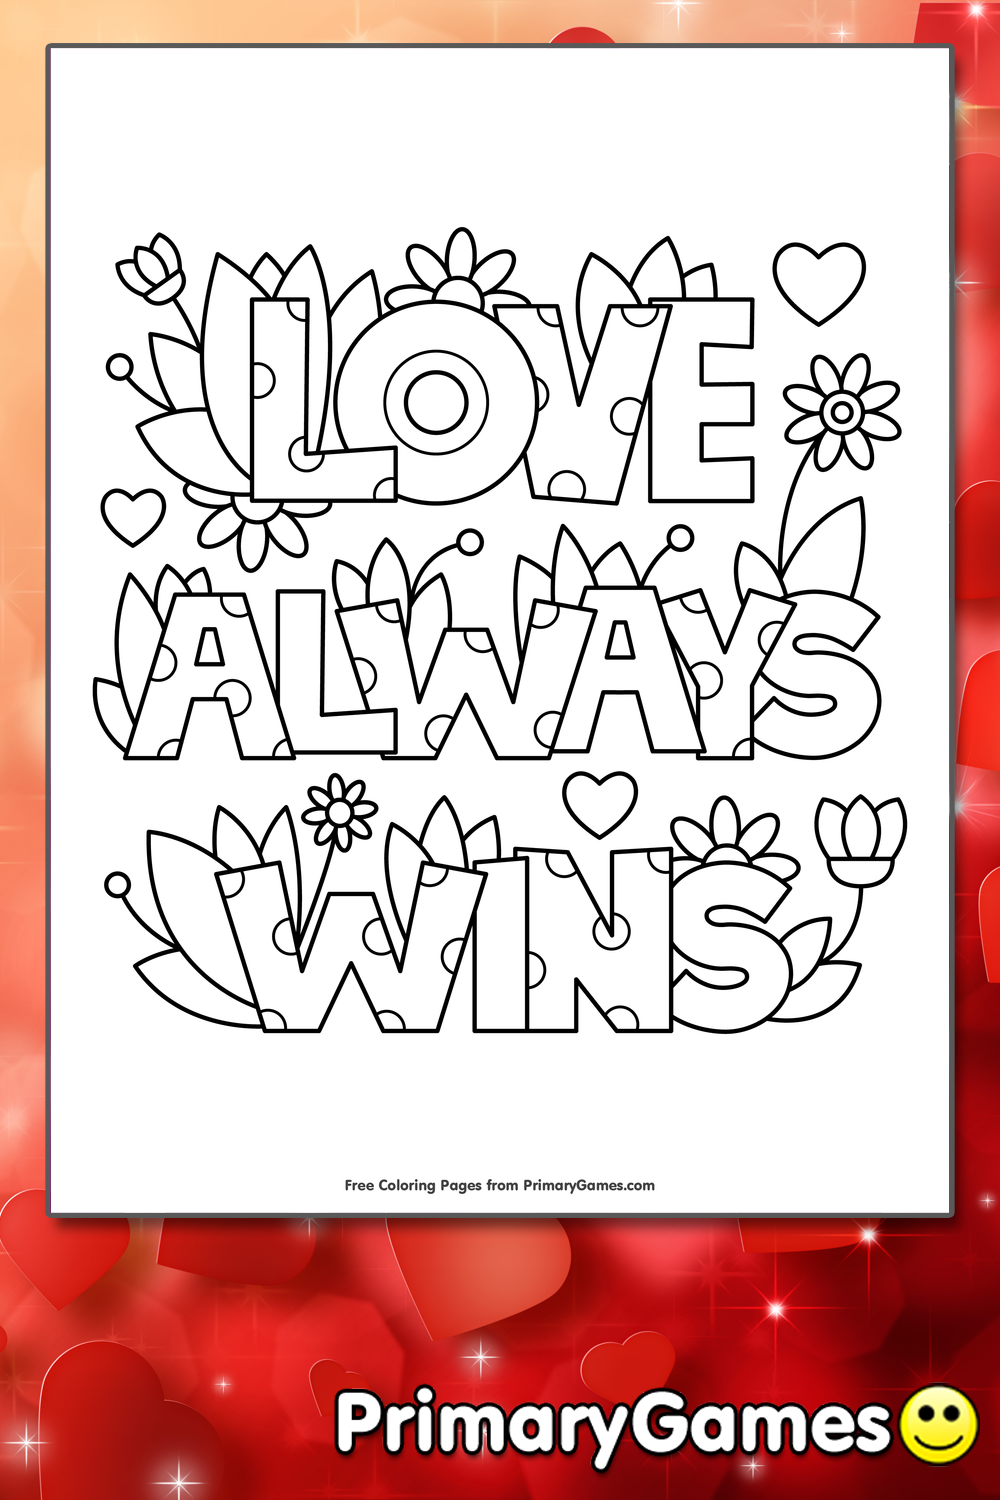 Love Always Wins Coloring Page Printable Valentine S Day